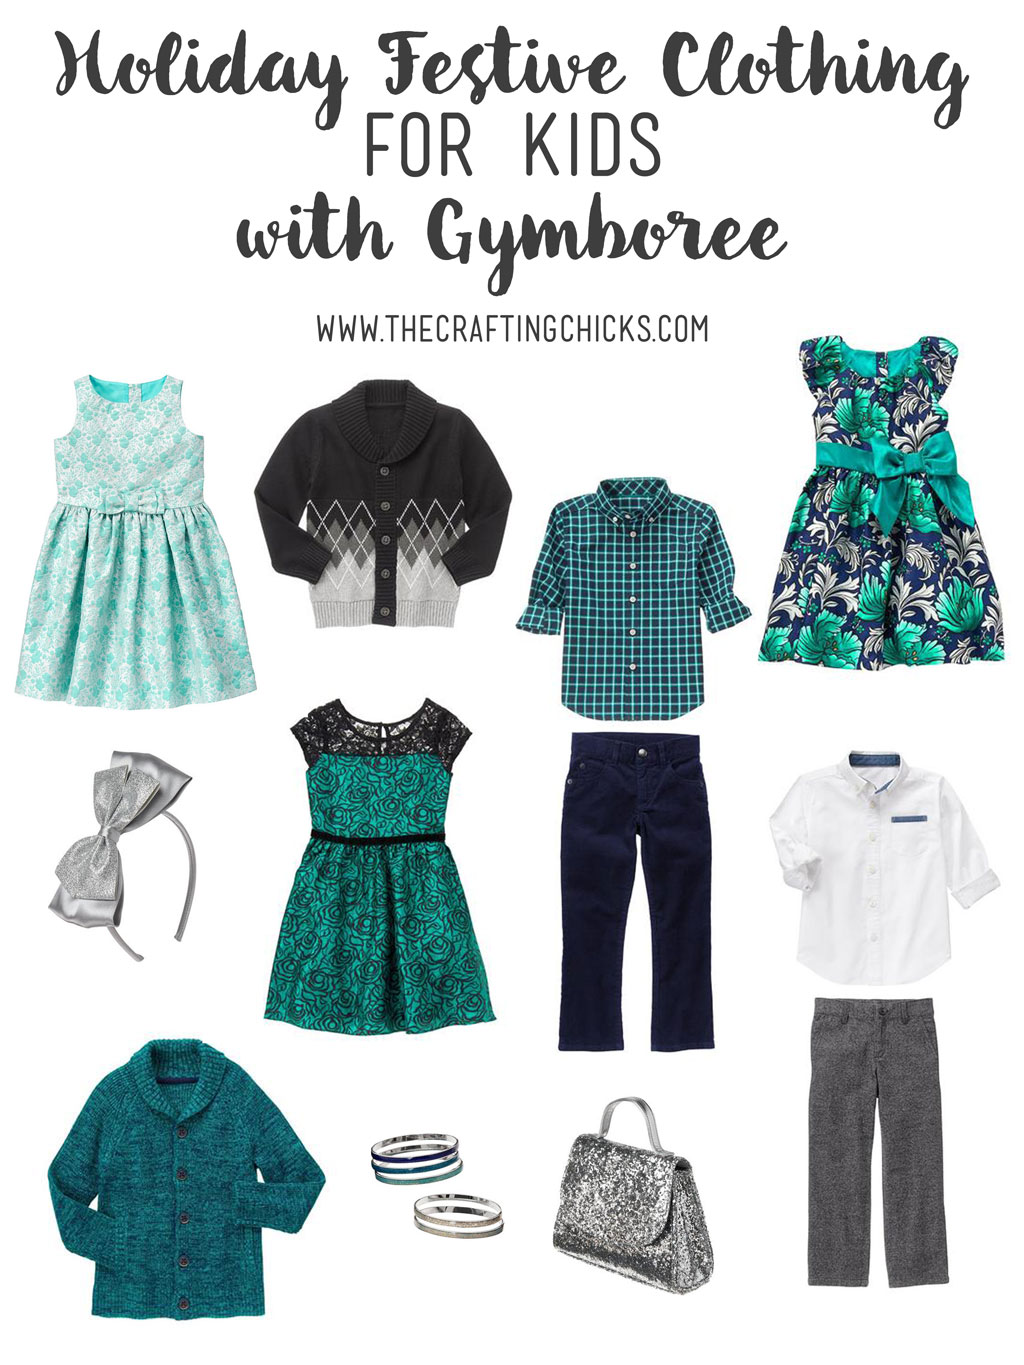 Holiday Festive Clothing for kids with Gymboree. This clothing guide will help you pick the perfect outfits for your kids